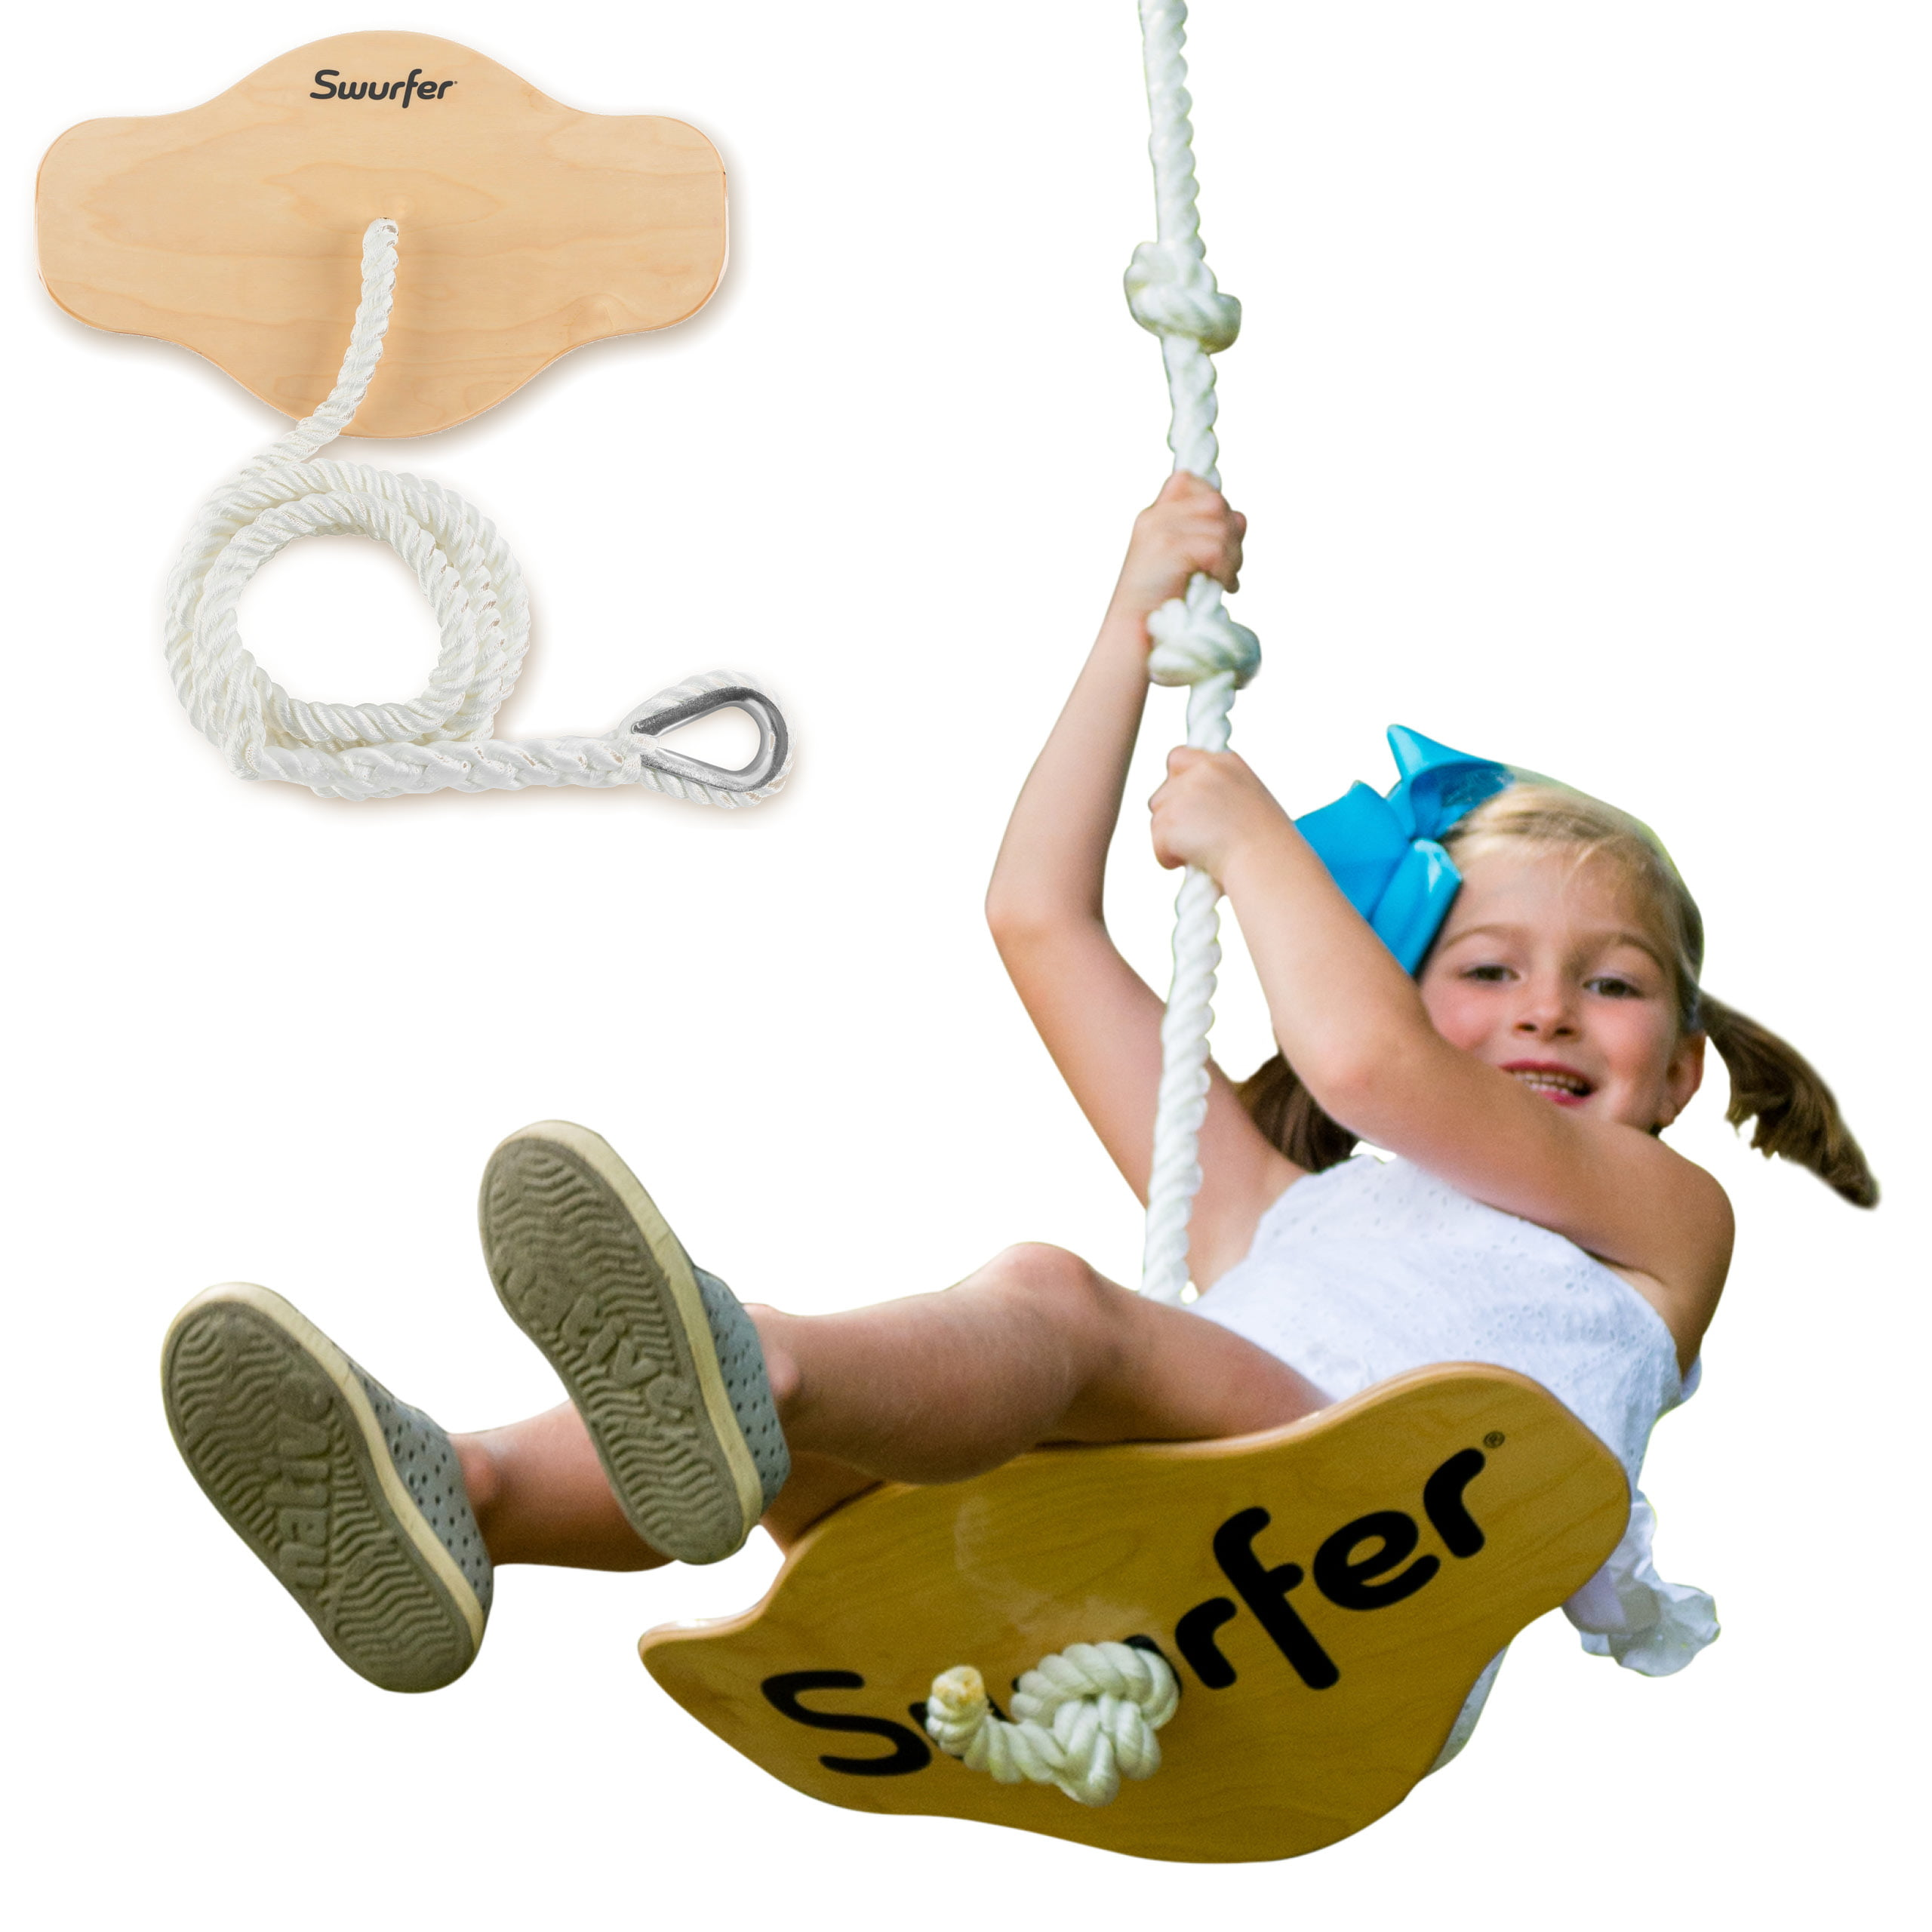 Swurfer Swift Maple Wood Curved Disc Swing With Heavy Duty Braided Rope Holds Up To 150 Pounds Ages 4 And Up Walmart Com Walmart Com